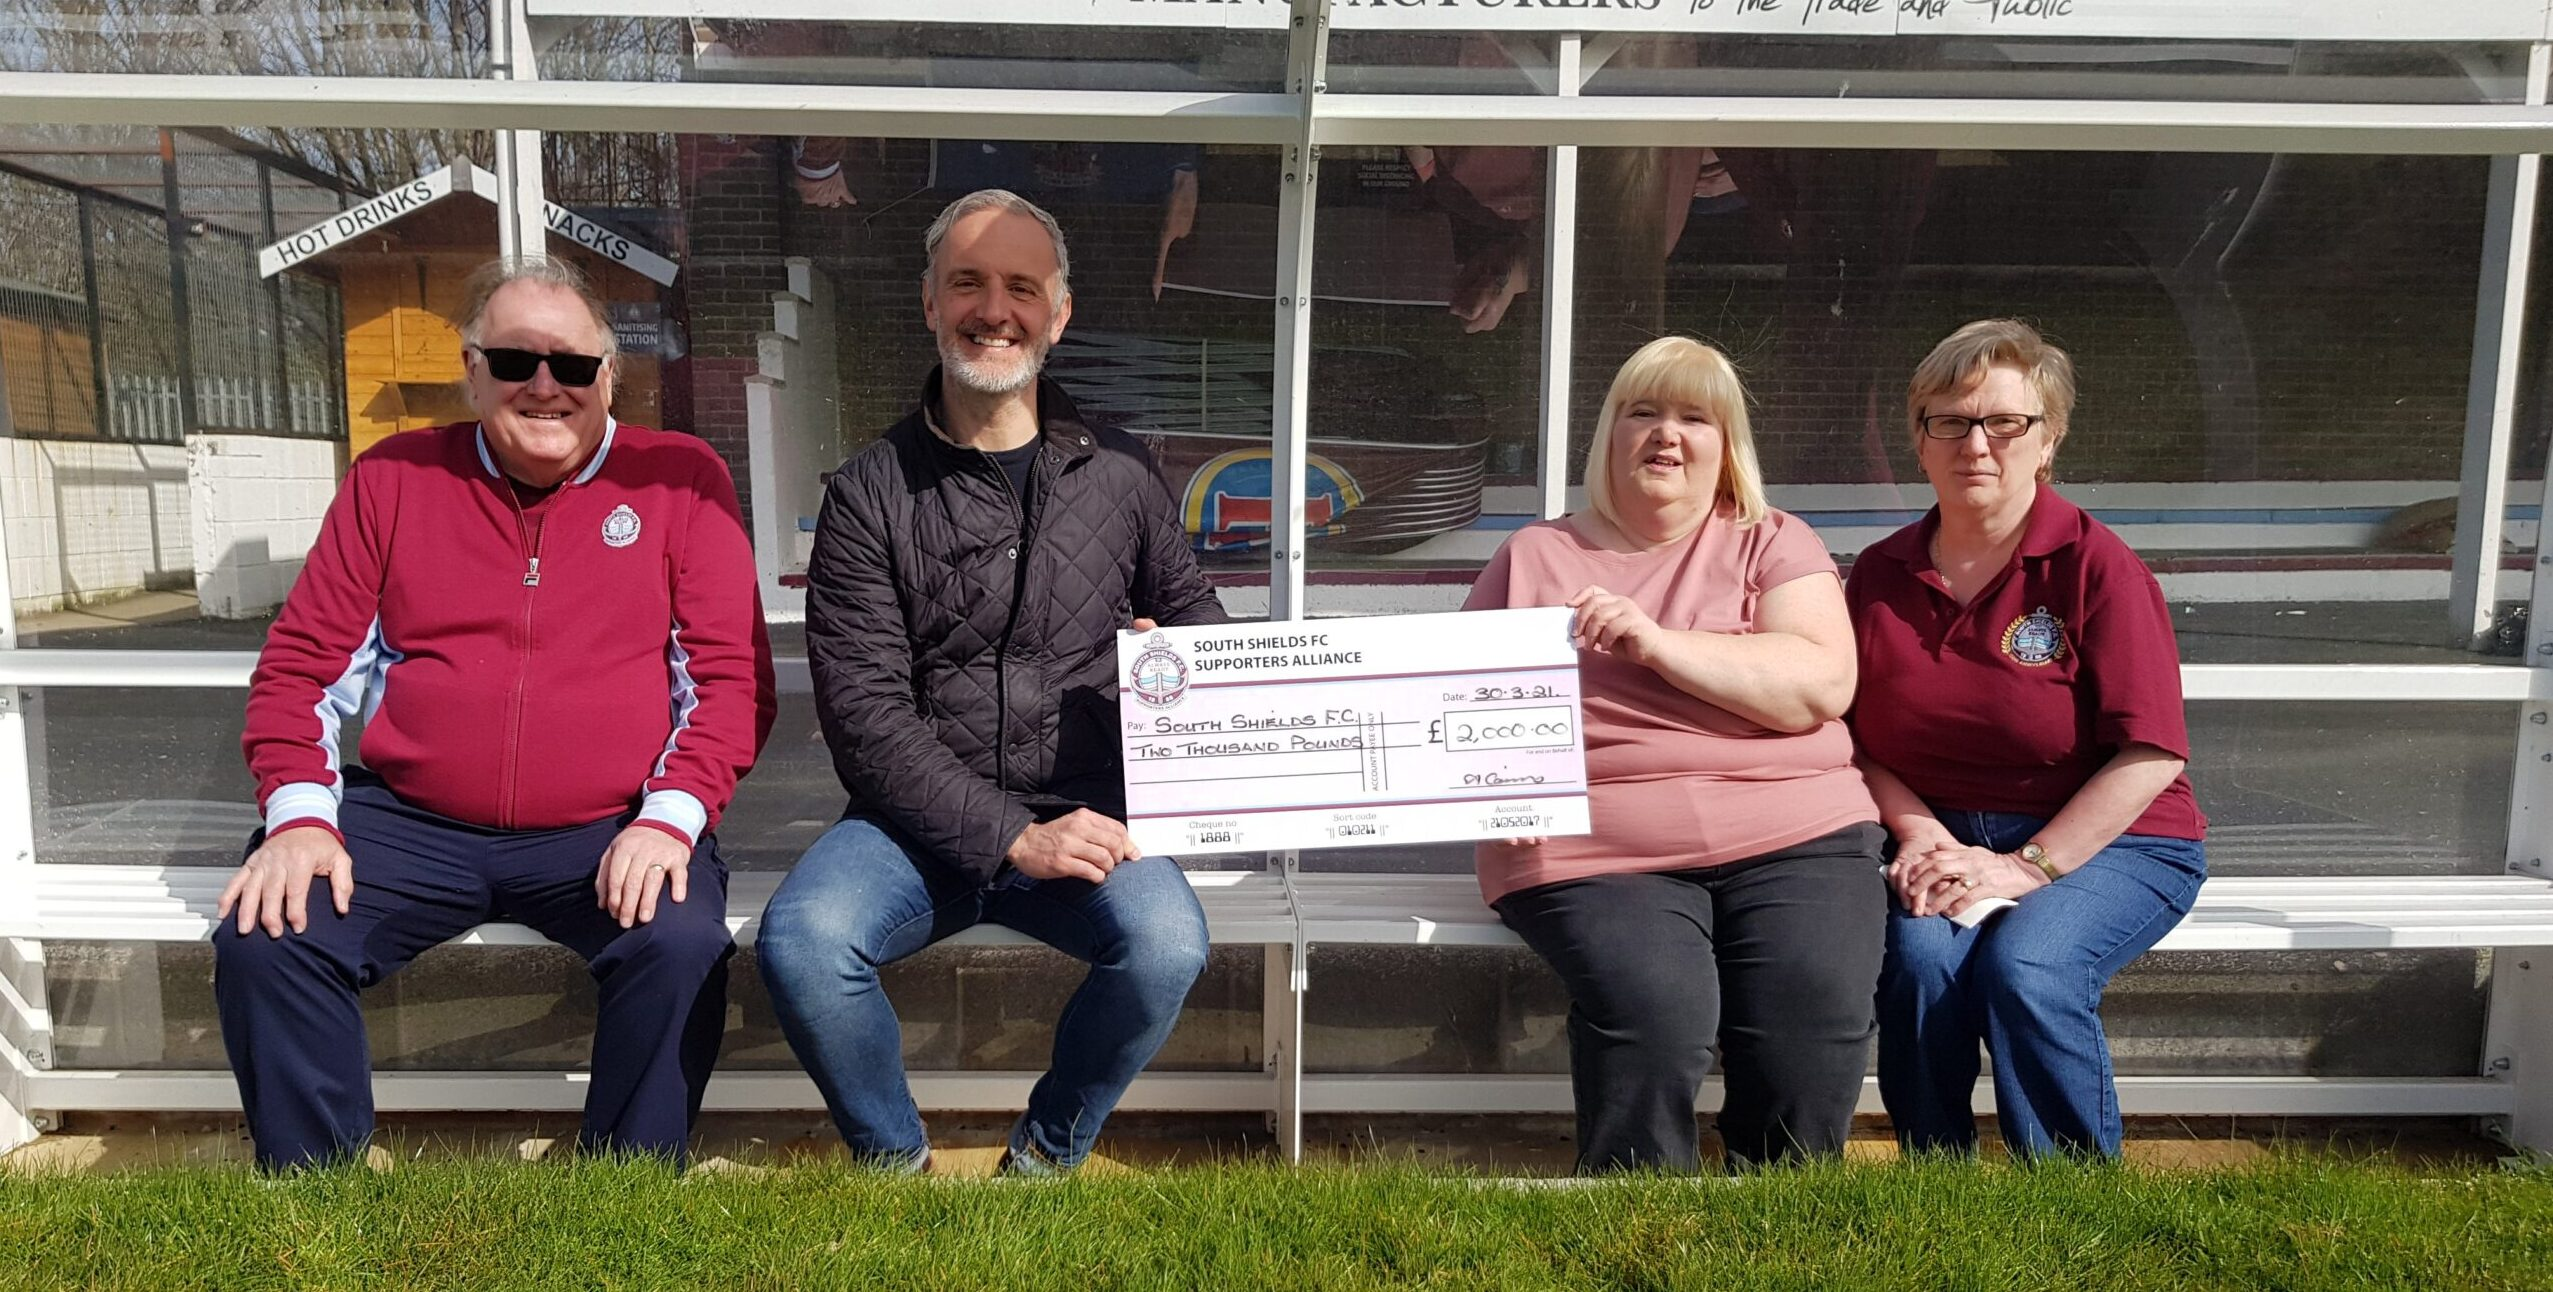 Supporters Alliance presents club with cheque for £2,000